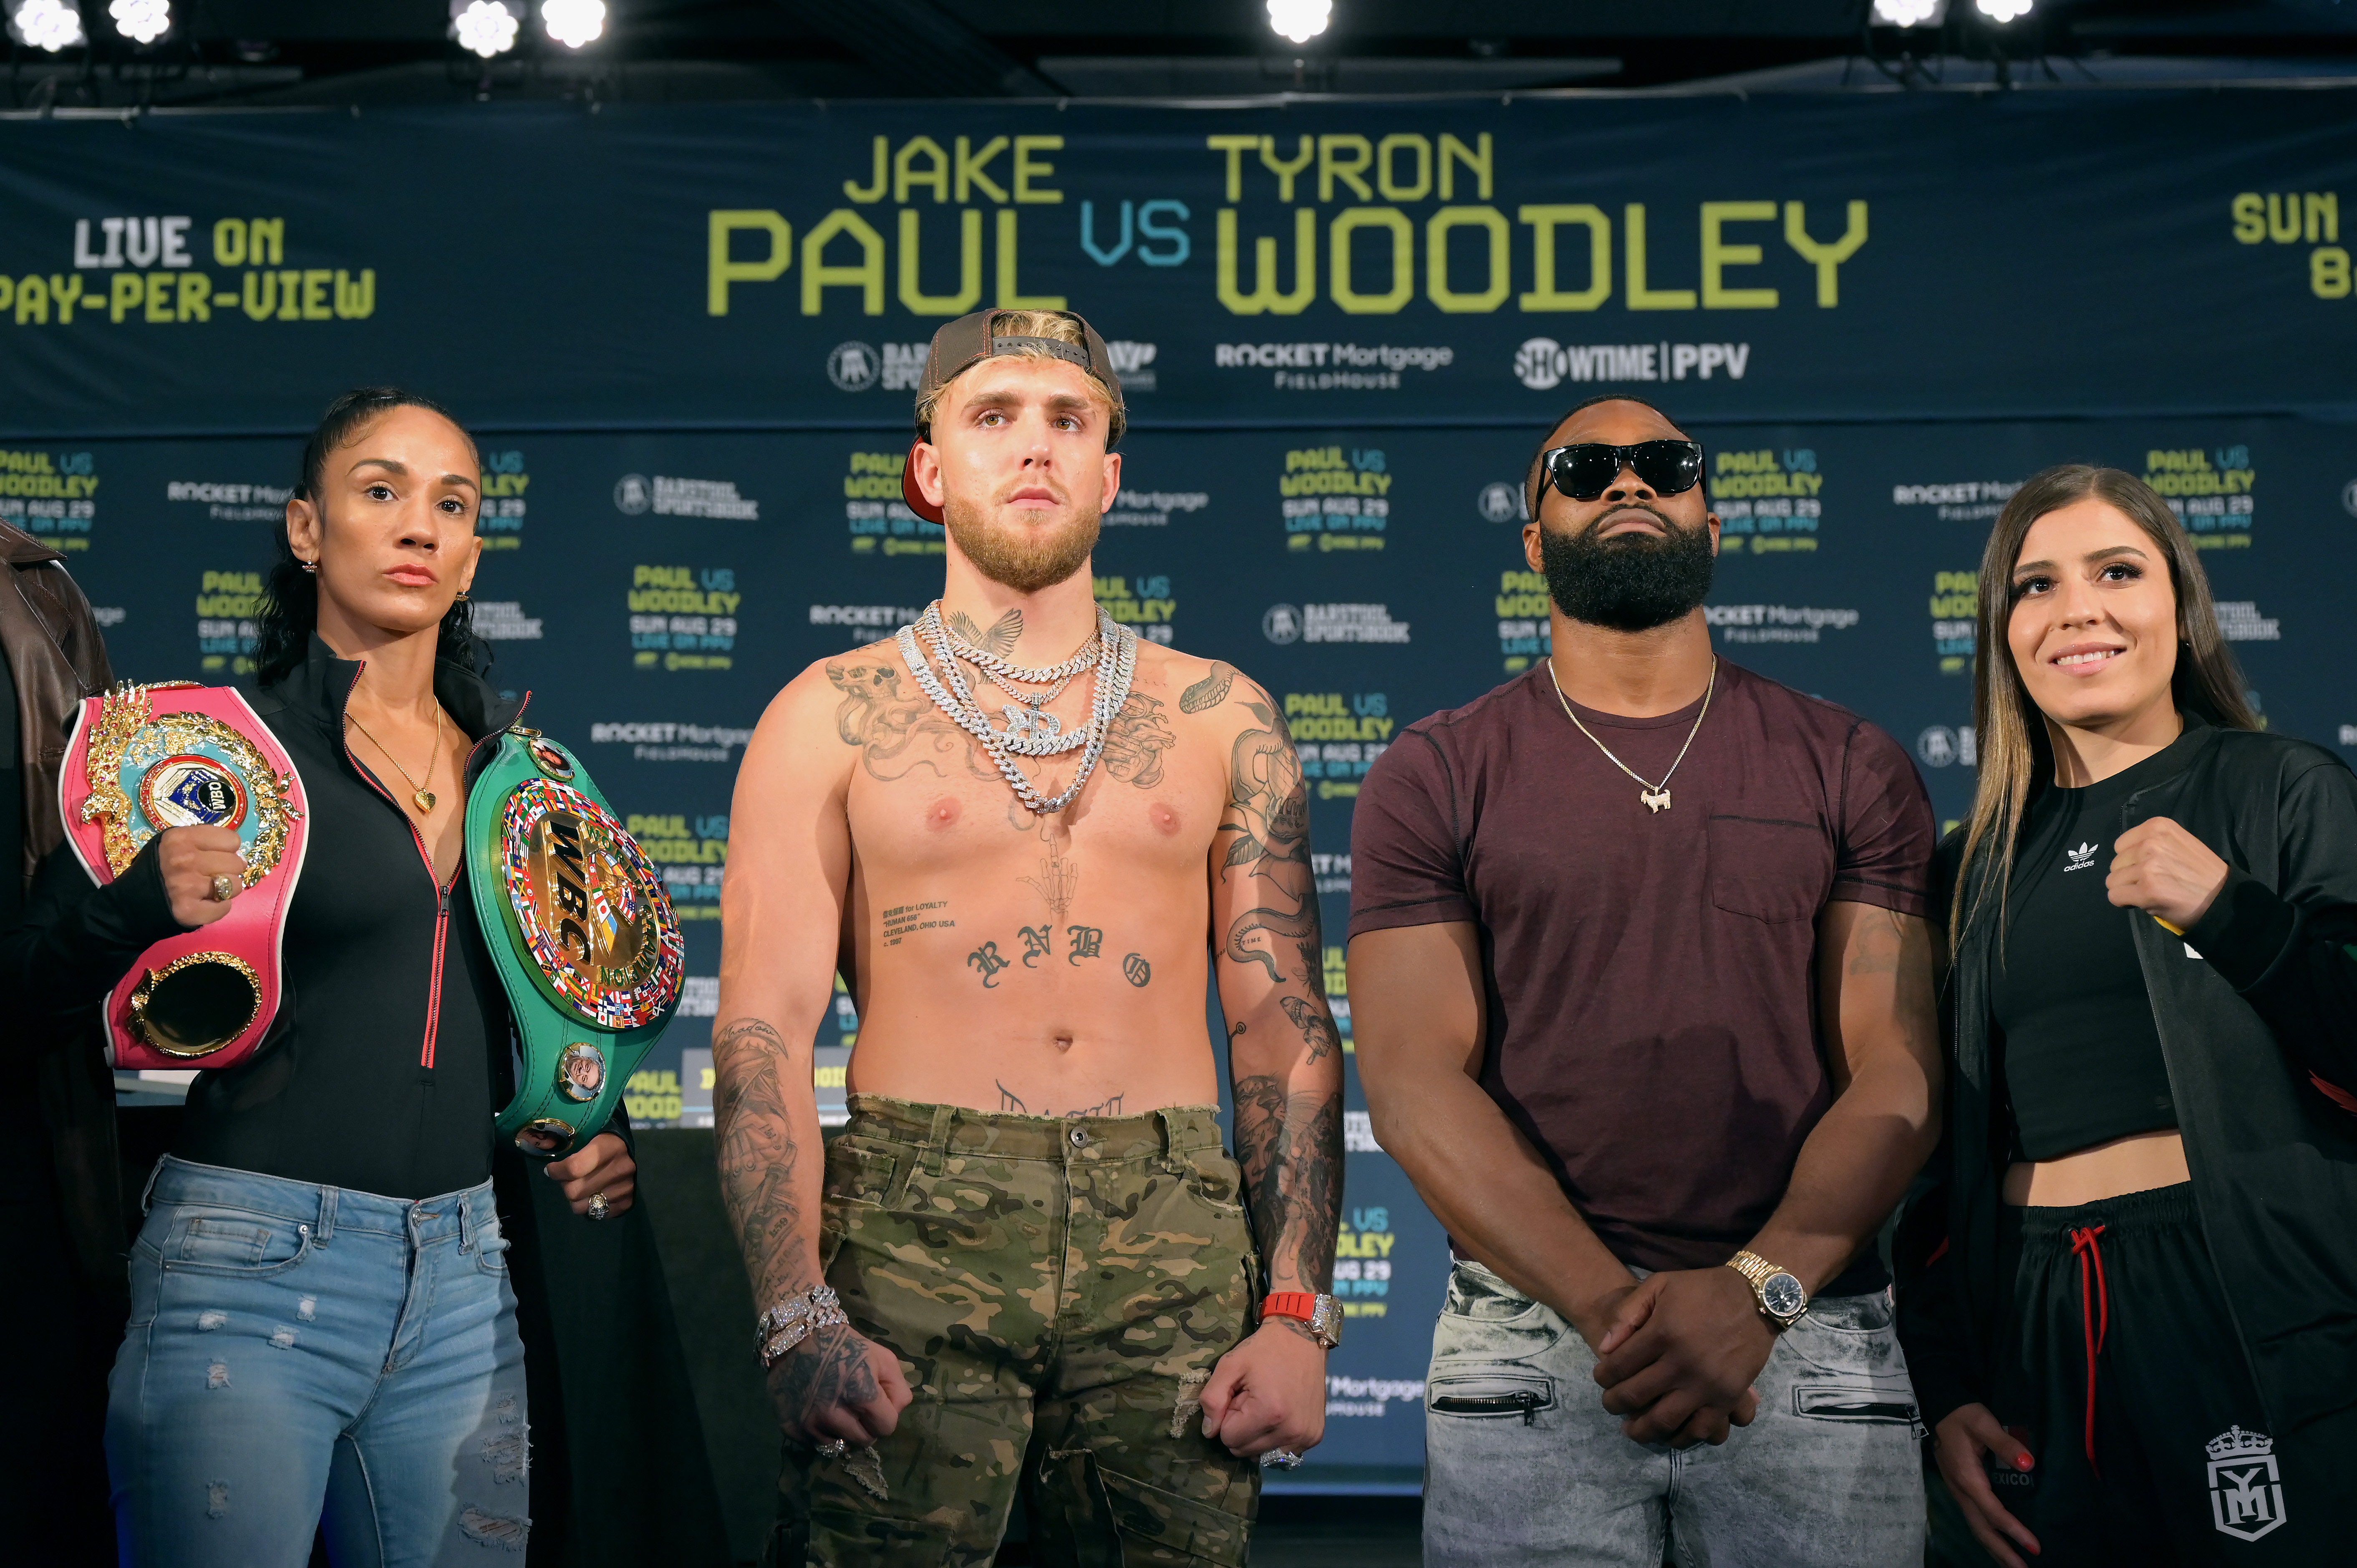 Amanda Serrano, Jake Paul, Tyron Woodley, and Yamileth Mercado (L-R) who are all on the card for the August 29 fight pose for a photo at the Hilton Cleveland Downtown during a press conference on August 26, 2021 in Cleveland, Ohio.